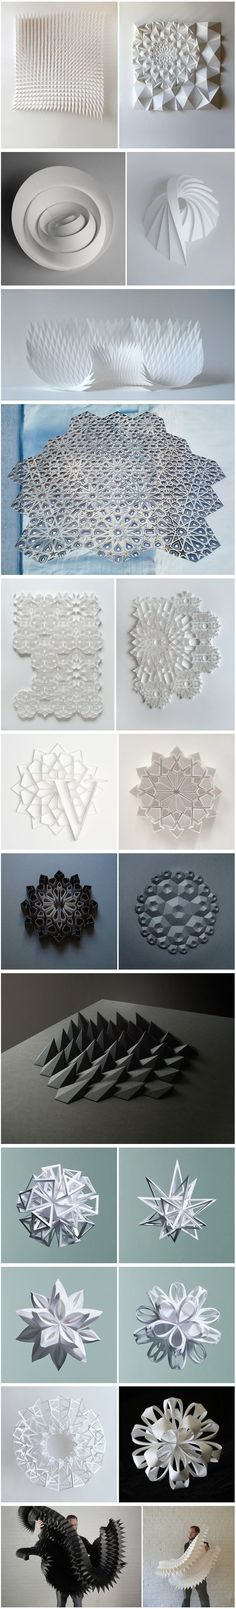 Geometric Paper Sculptures: